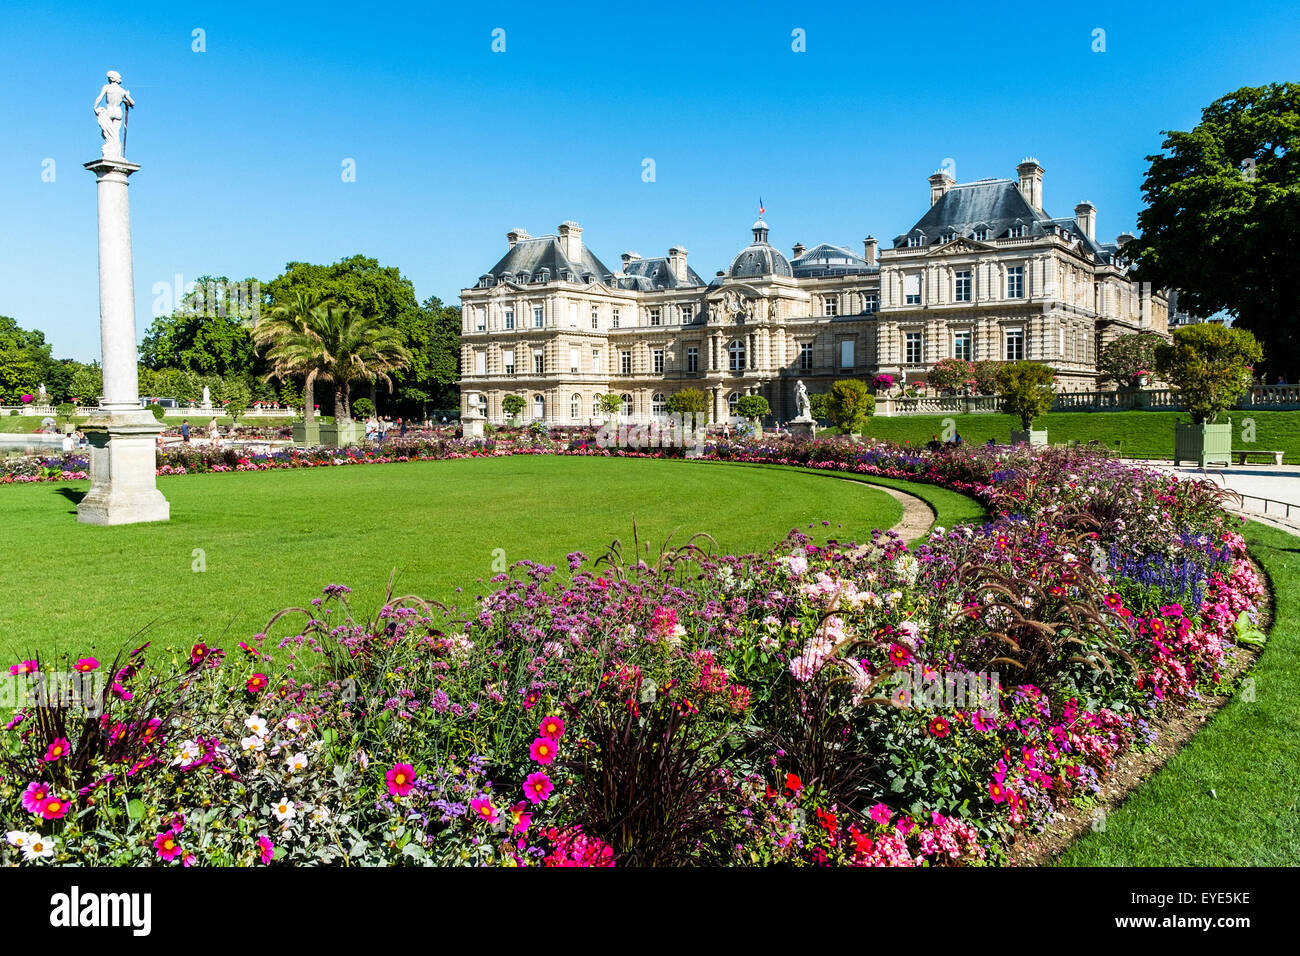 Le jardin du luxembourg gardens paris france stock photo for France jardin